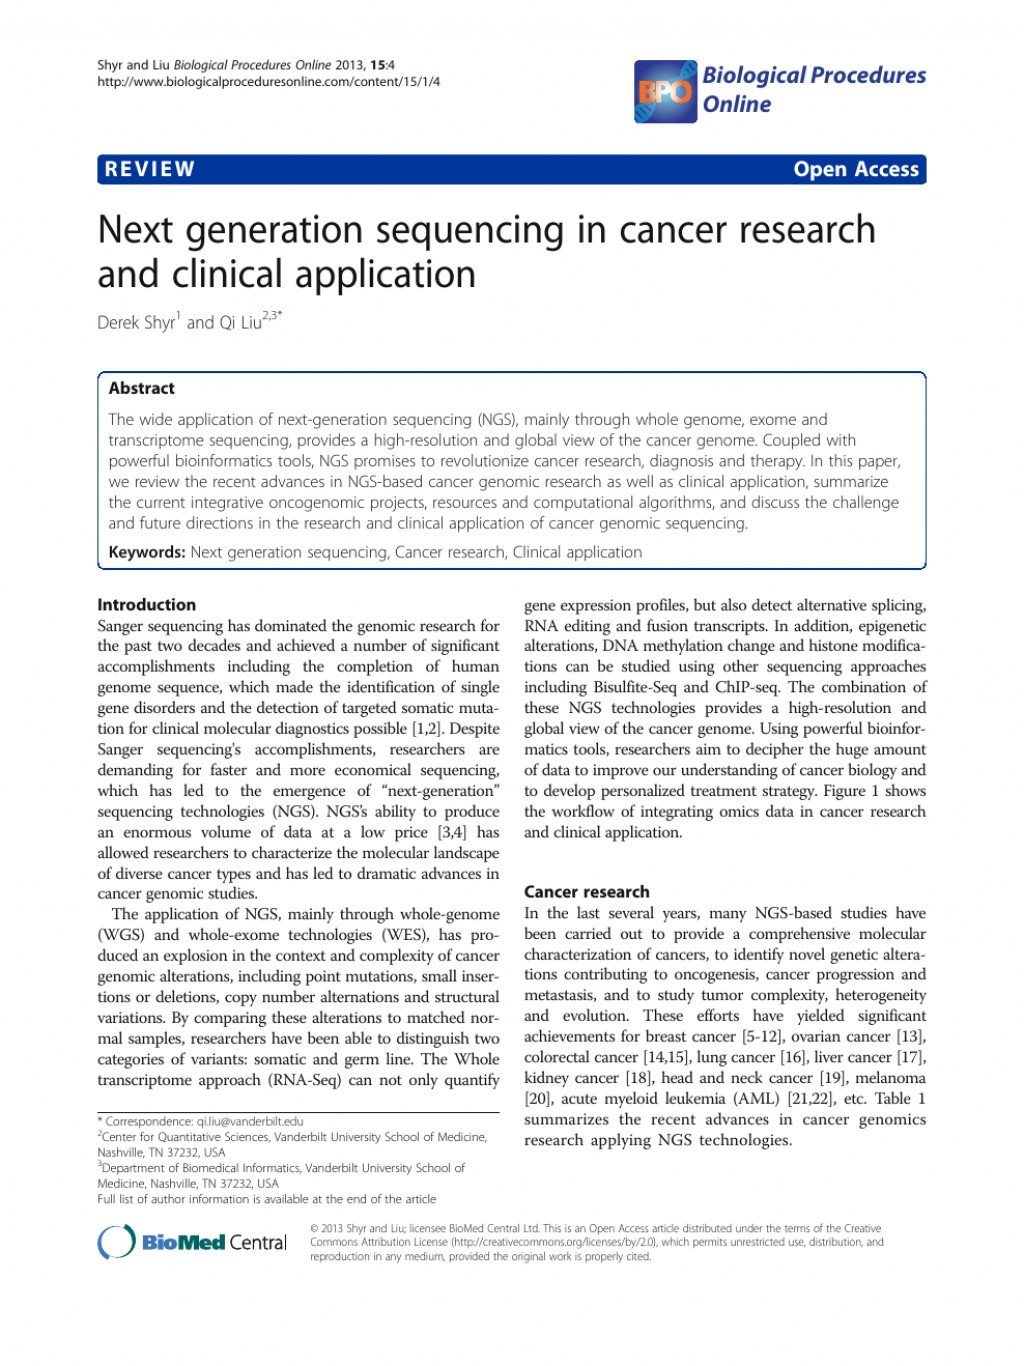 010 Research Paper Cancer Topics Marvelous Breast Ideas Ovarian Large